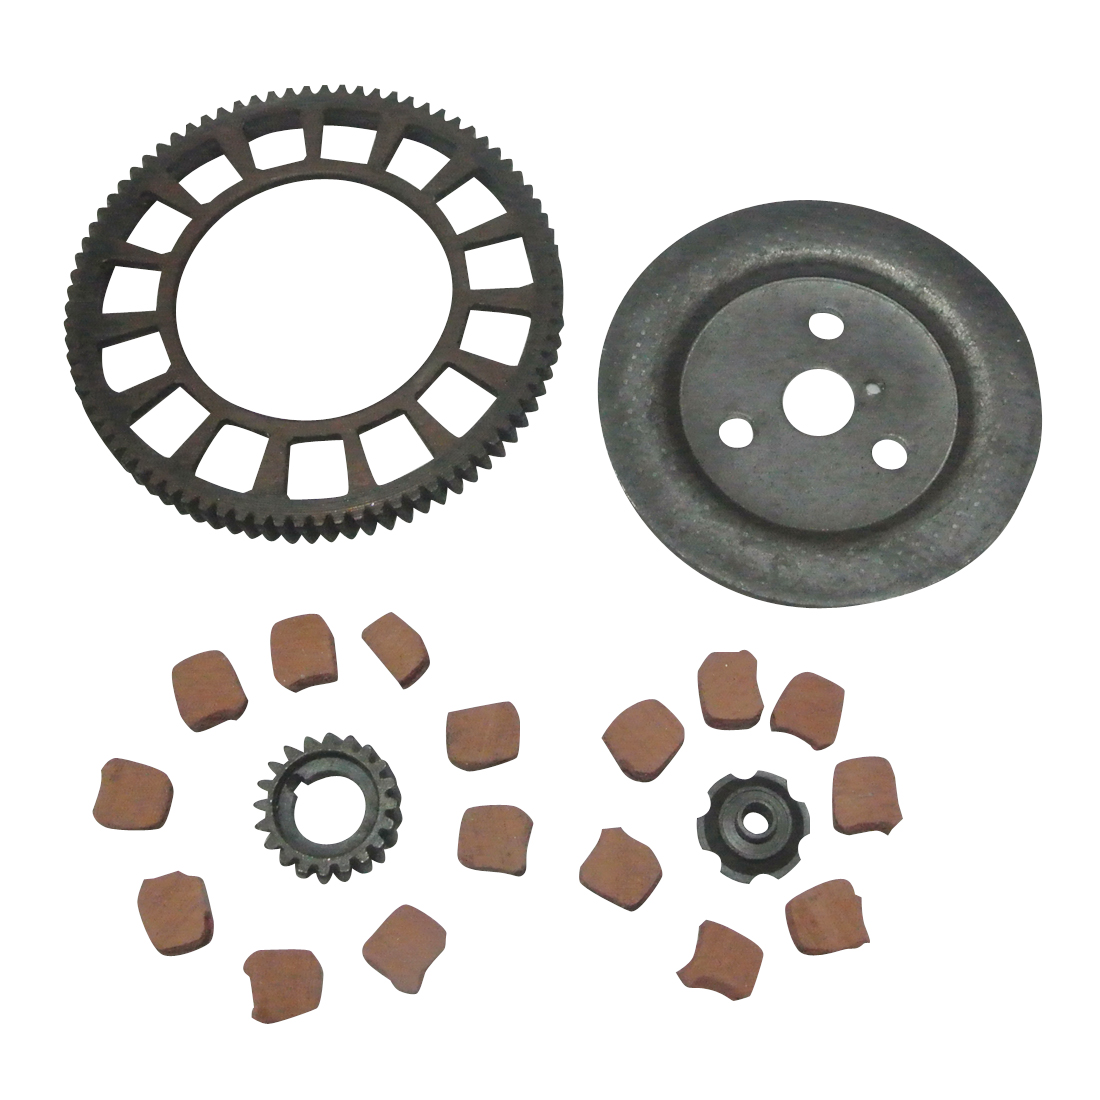 Clutch Flower Nut Big Bevel Gear + Friction Pads For 49/80CC Motorised Bicycle